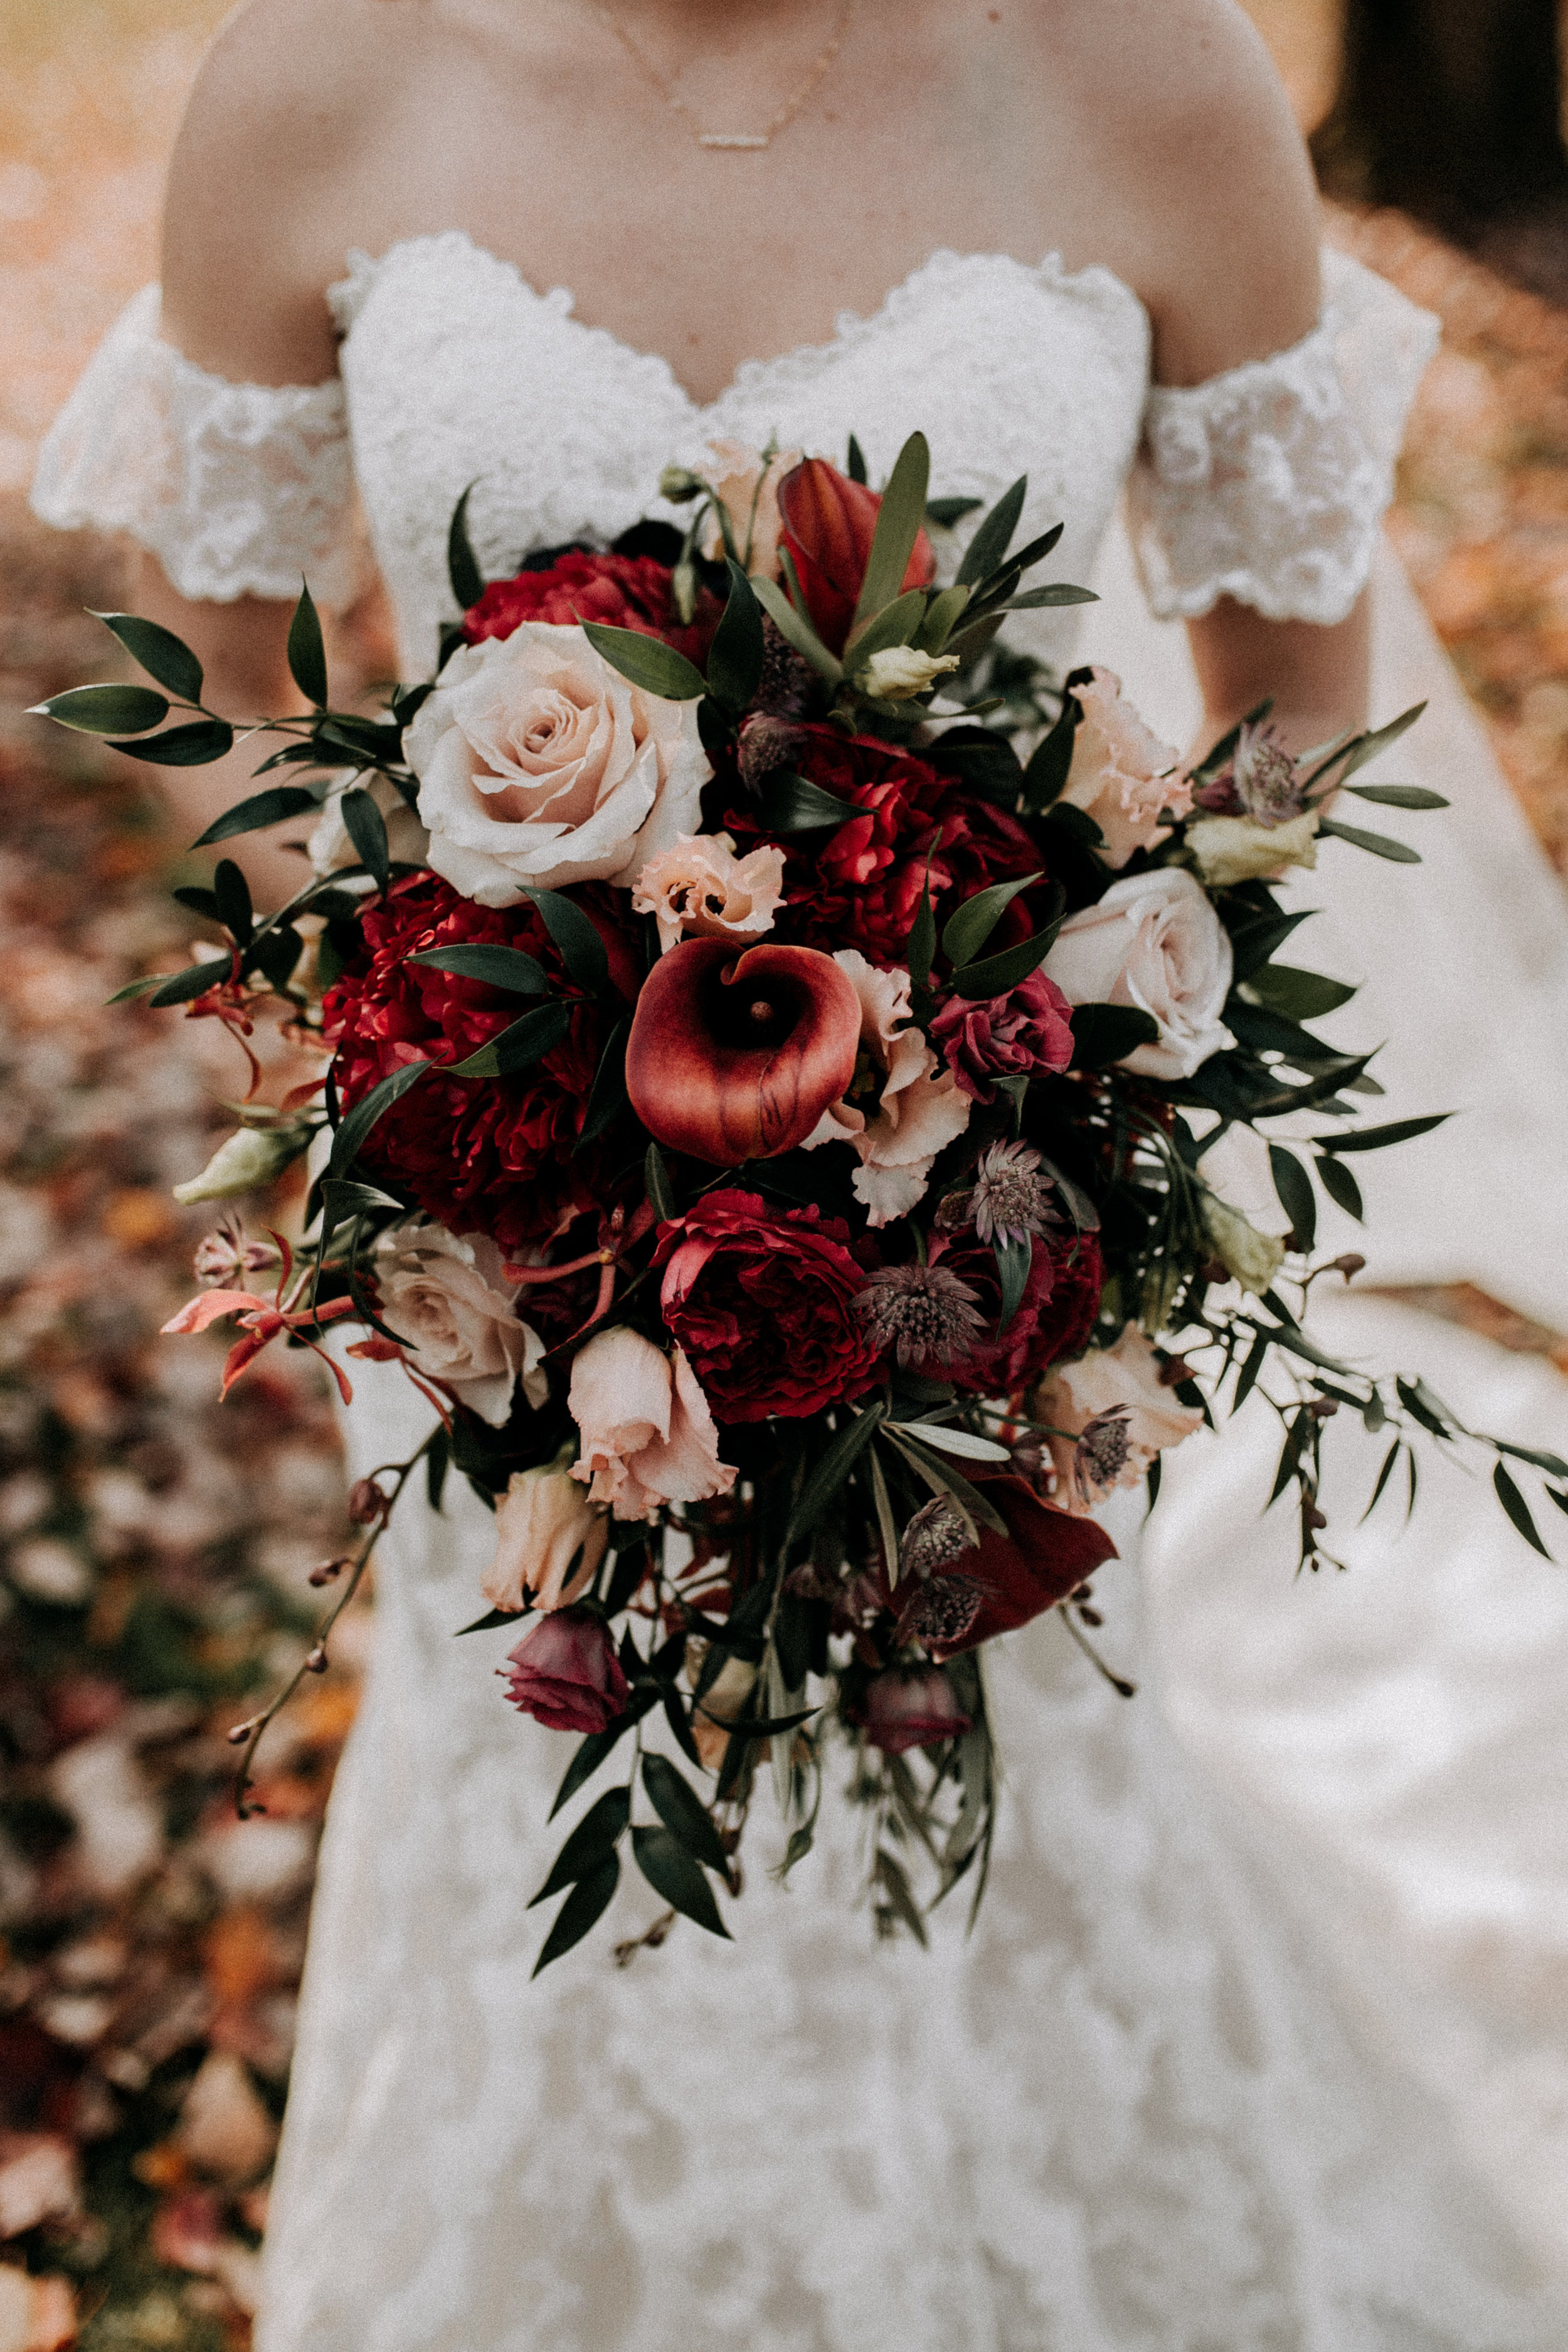 5 Rules For A Rustic But Classy Wedding Inspiration And Advice To Plan The Perfect Wedding